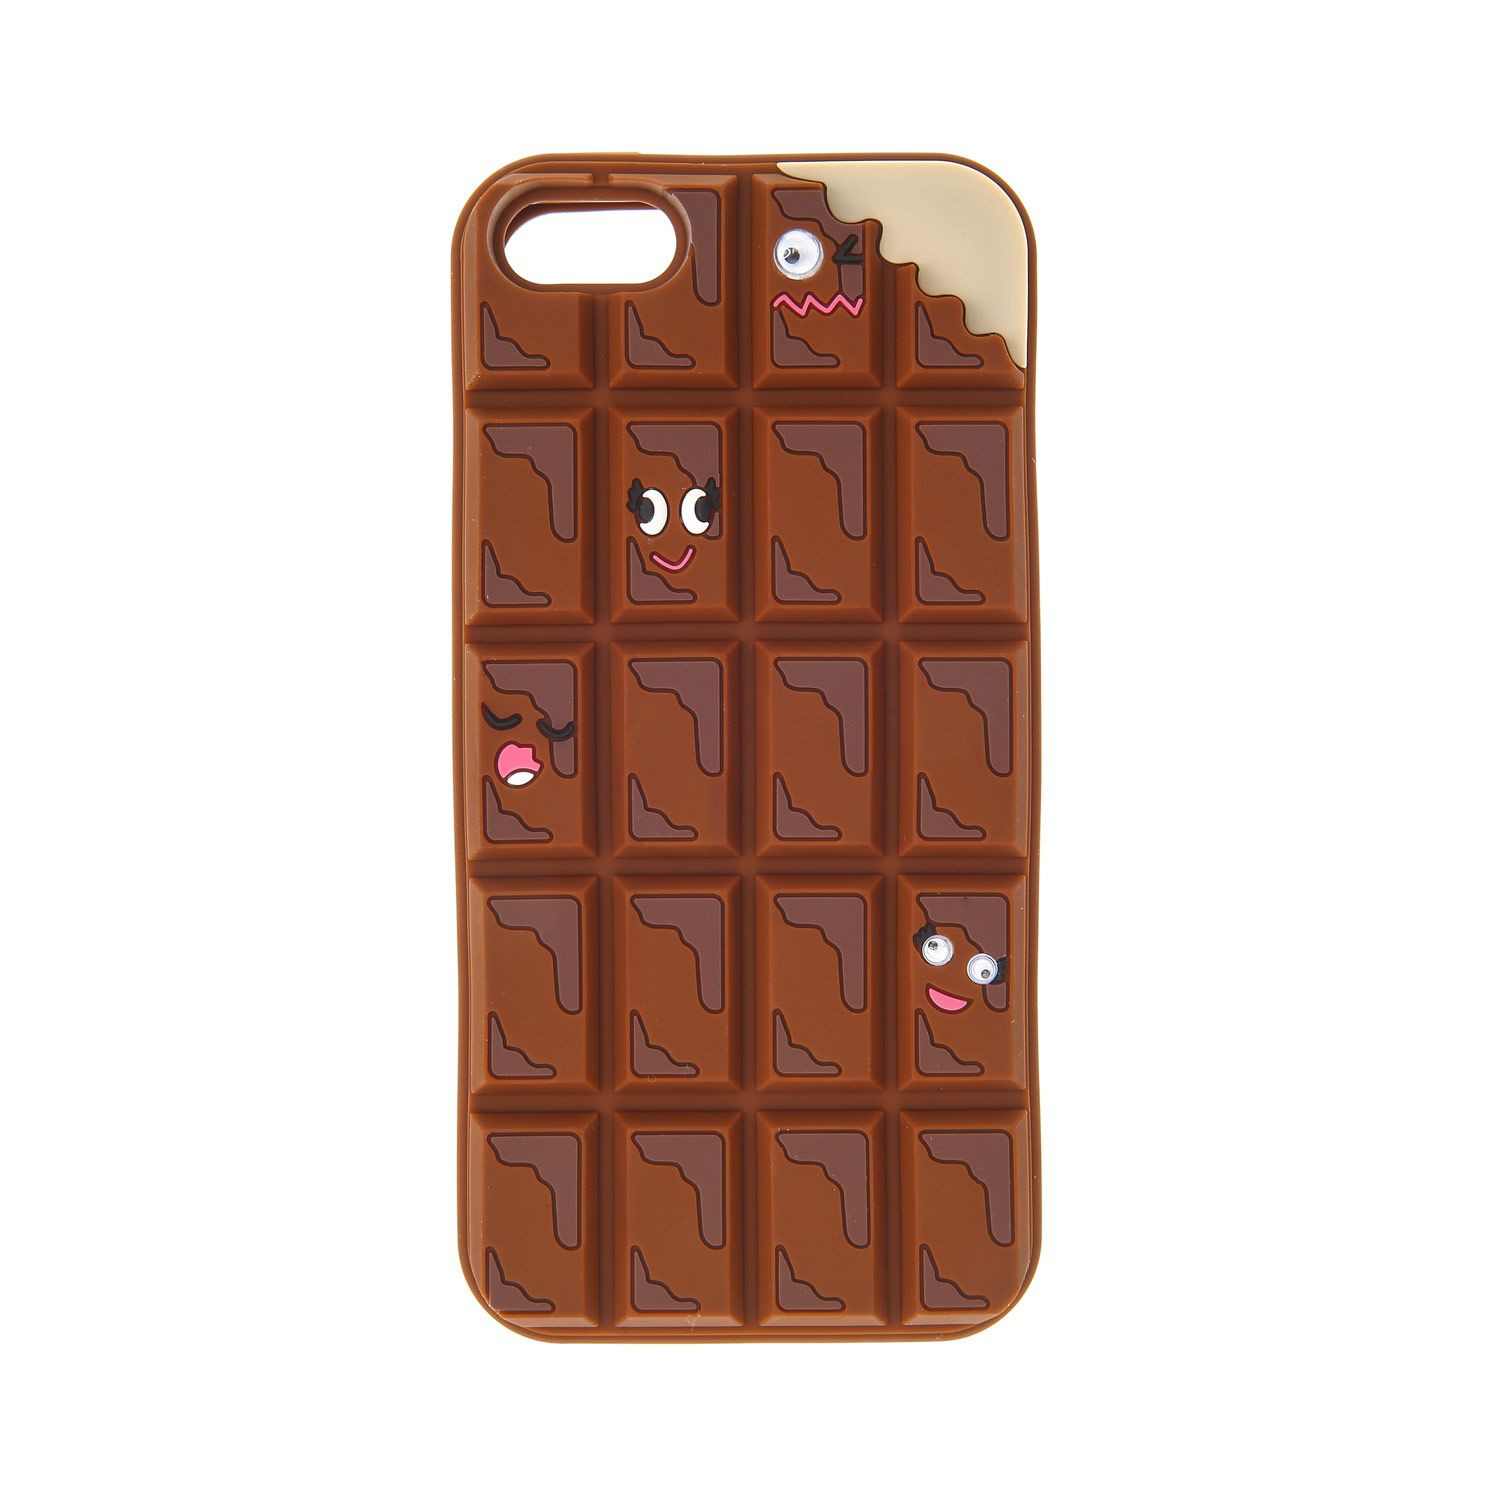 Chocolate Chunks Phone Case - iPhone 5/5S, iPhone 5/5S , all, Phone & iPod Cases, Your Fave's, Phone & Tablet Accessories, Accessories, What's Hot, In The Press Fashion trends, accessories and jewellery for young women